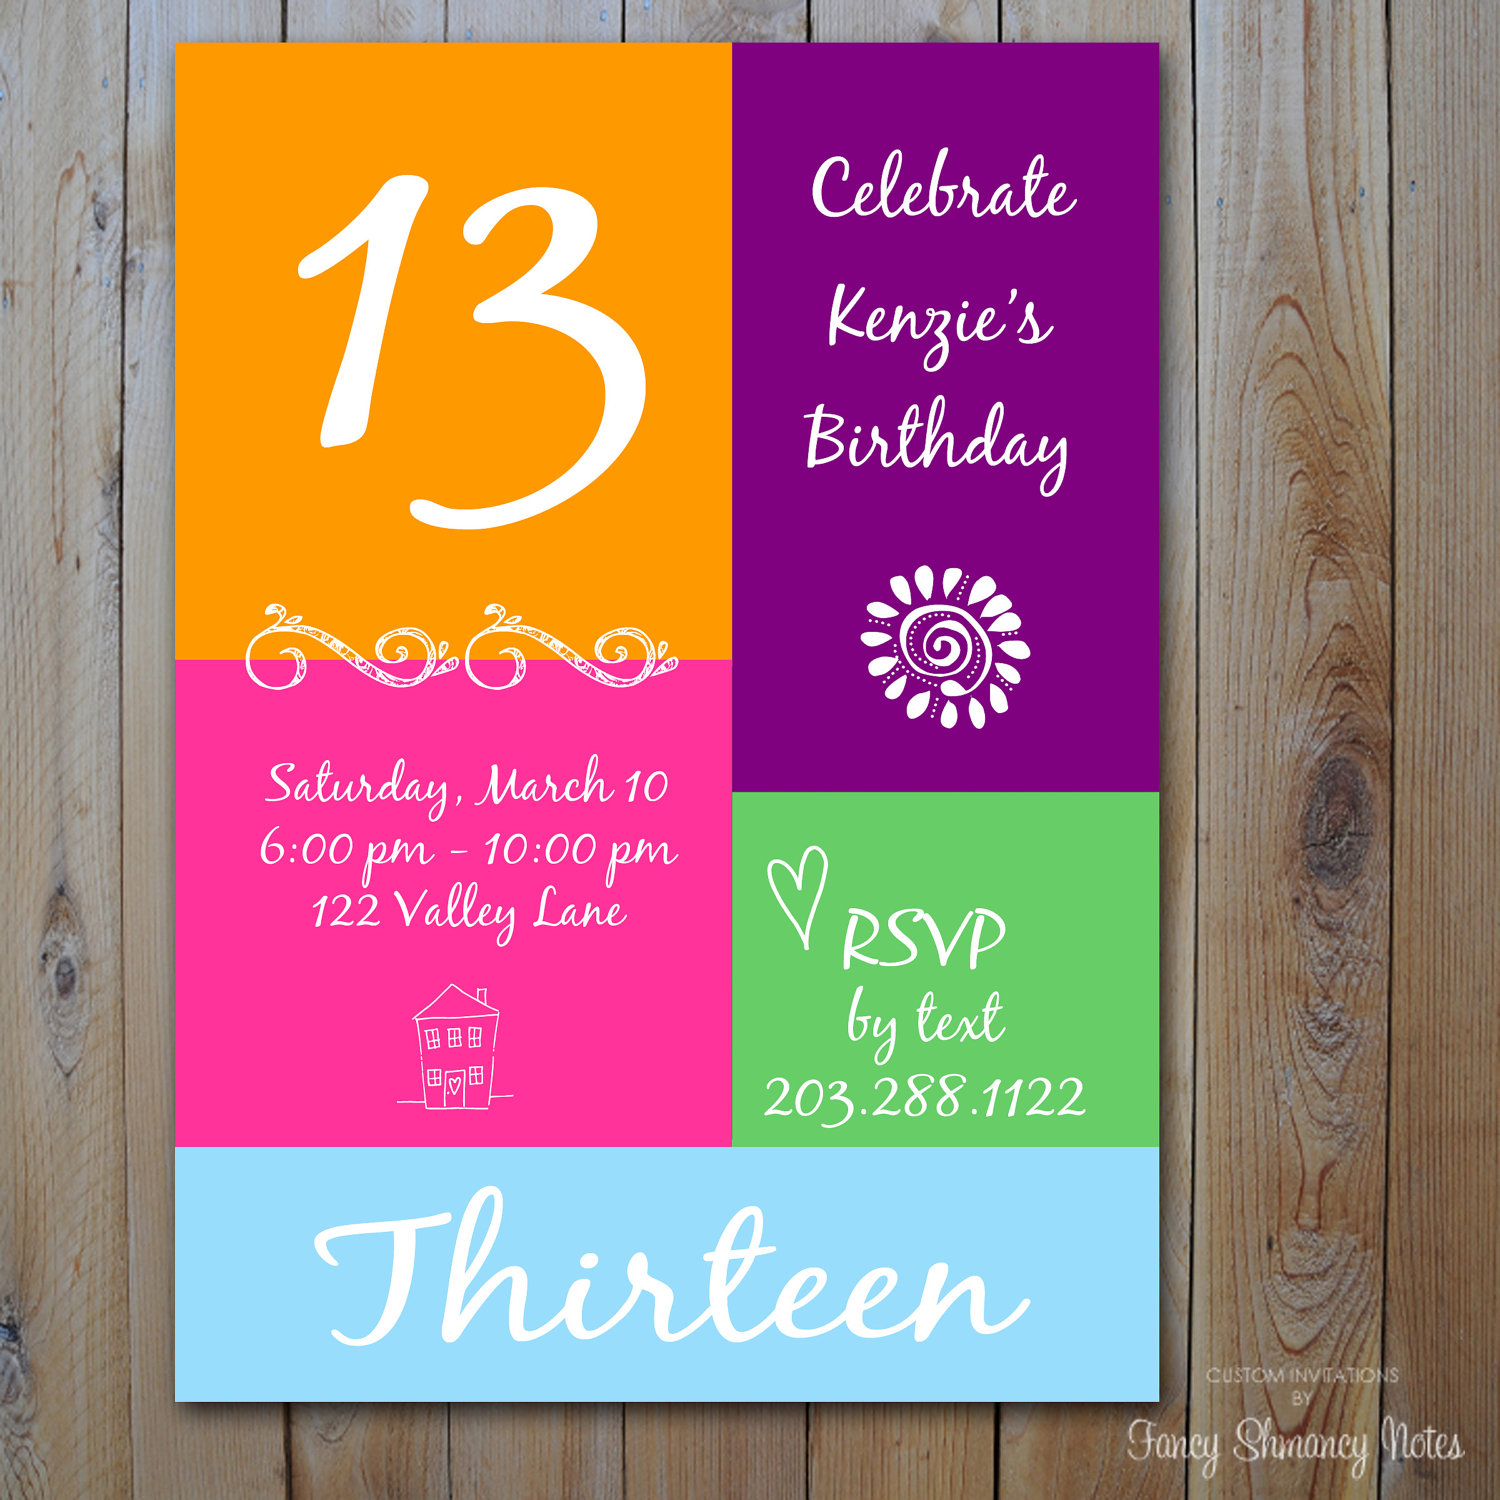 turning 6 birthday invitation wording ; turning-10-birthday-invitation-wording-turning-6-birthday-invitation-wording-is-terrific-ideas-which-can-be-applied-into-your-birthday-invitation-10